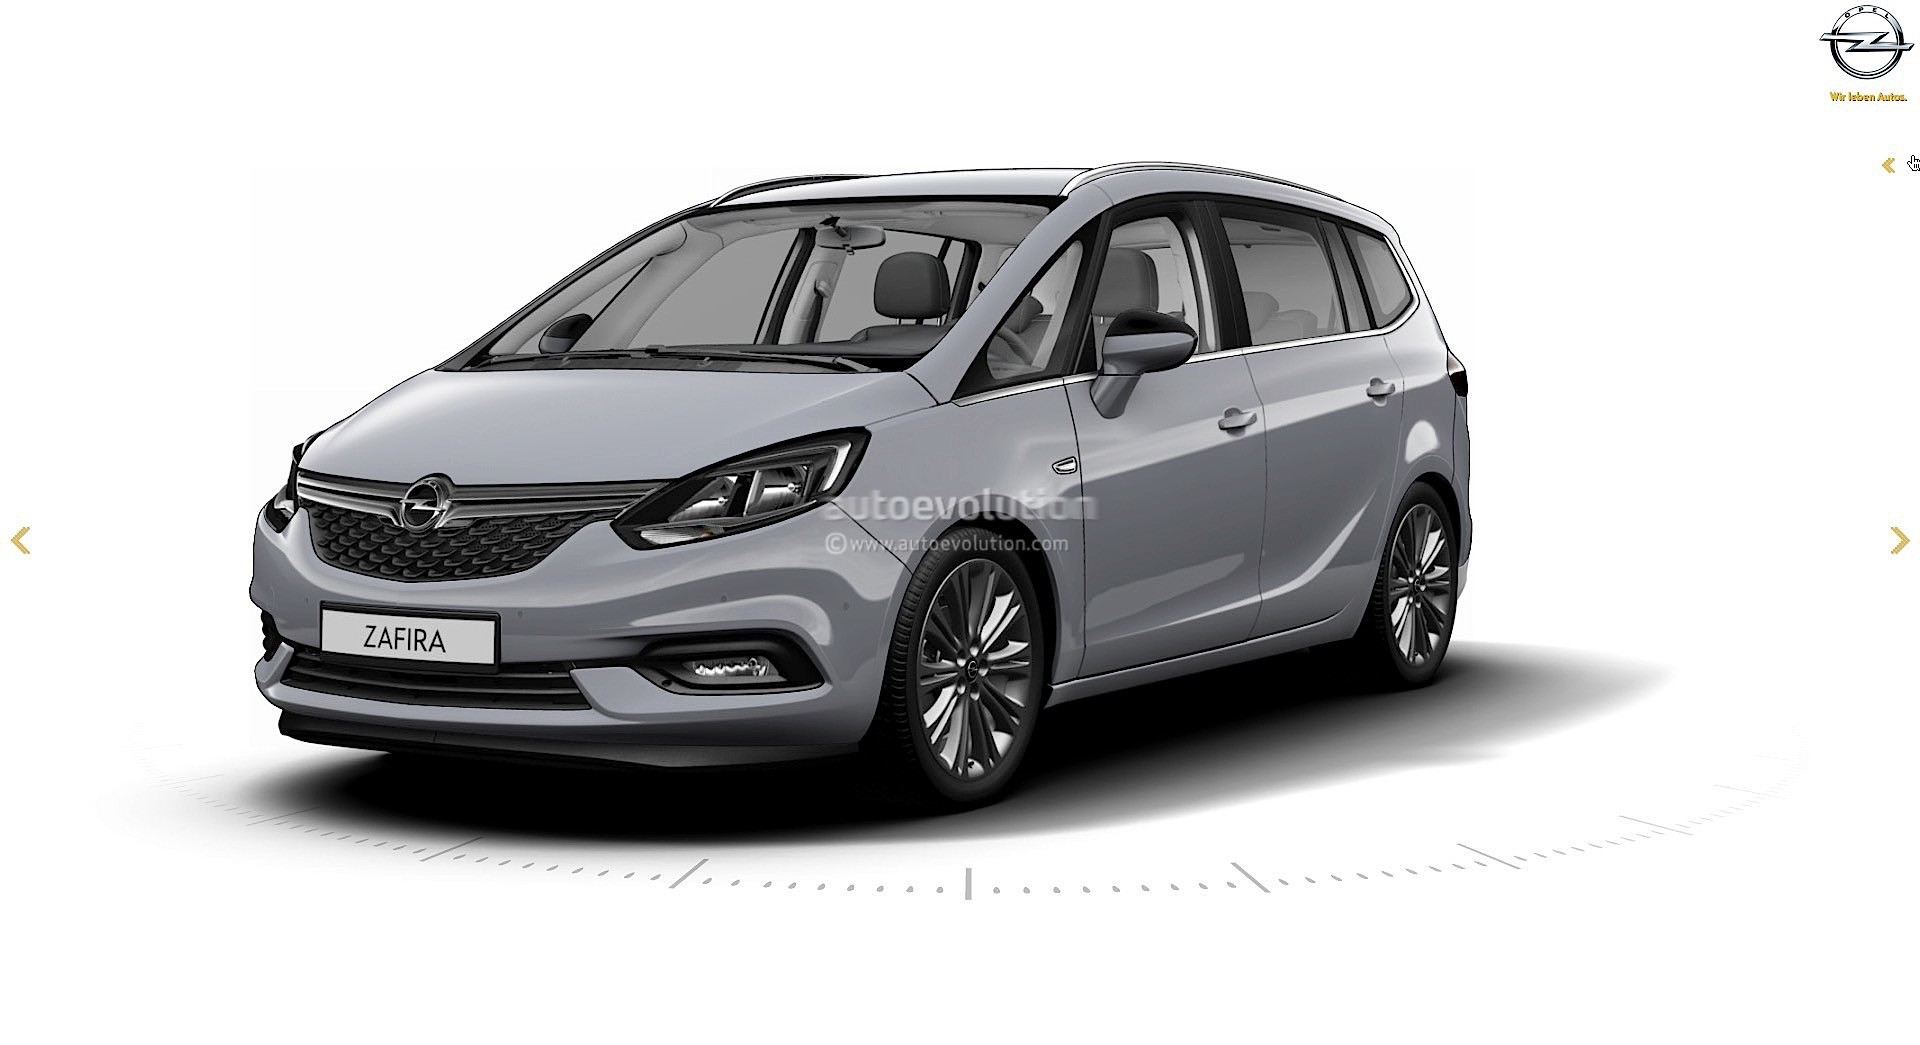 2017 Opel Zafira Facelift Leaked On GM Website Here Are